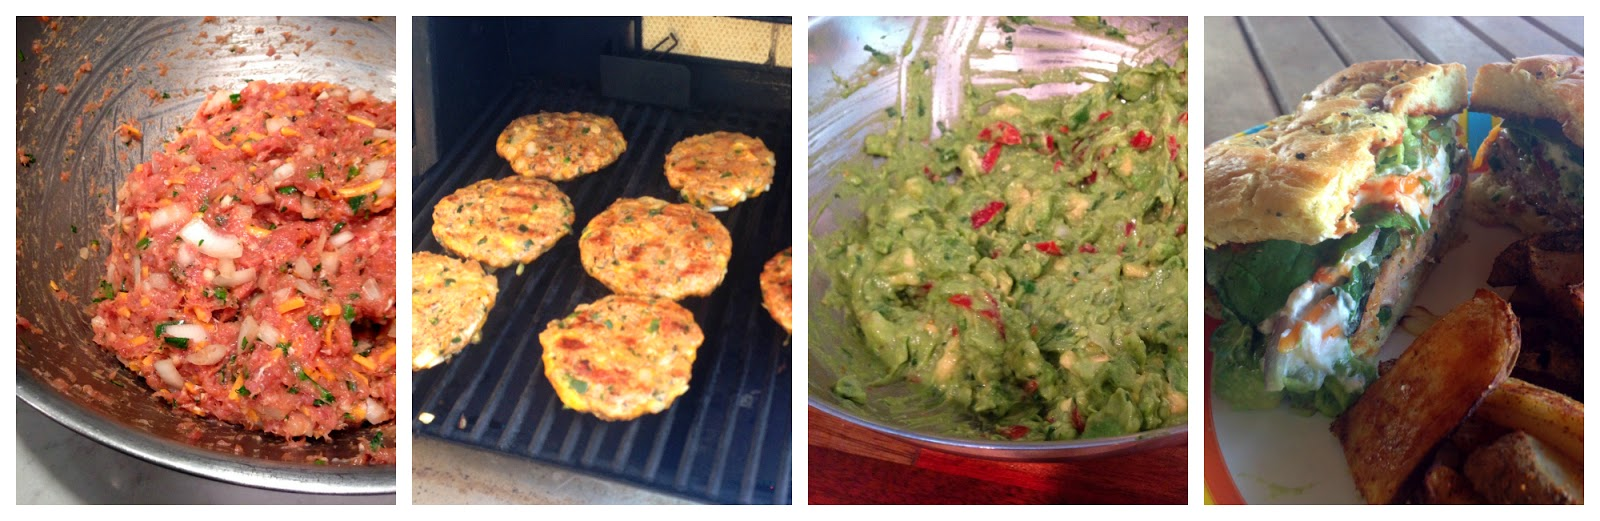 ... : PYRC #57: Cheddar Jalapeno Chicken Burgers with Homemade Guacamole